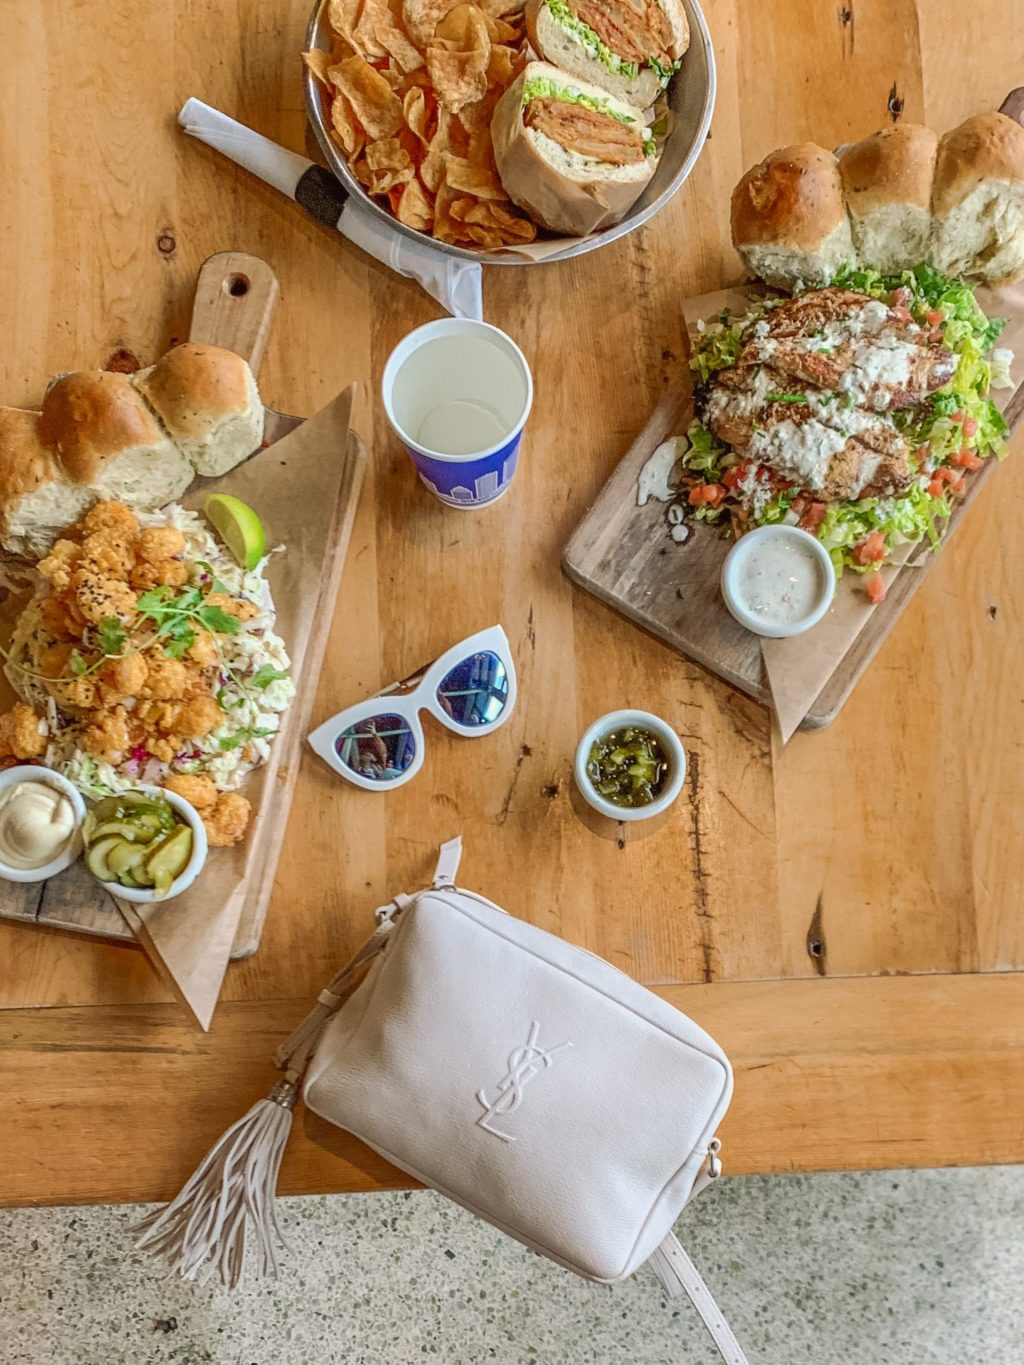 Thinking of visiting Jacksonville Florida with your family or girlfriends for a fun weekend? Sharing this spot - Bread & Board plus other restaurants you need to stop and grab a bite at.